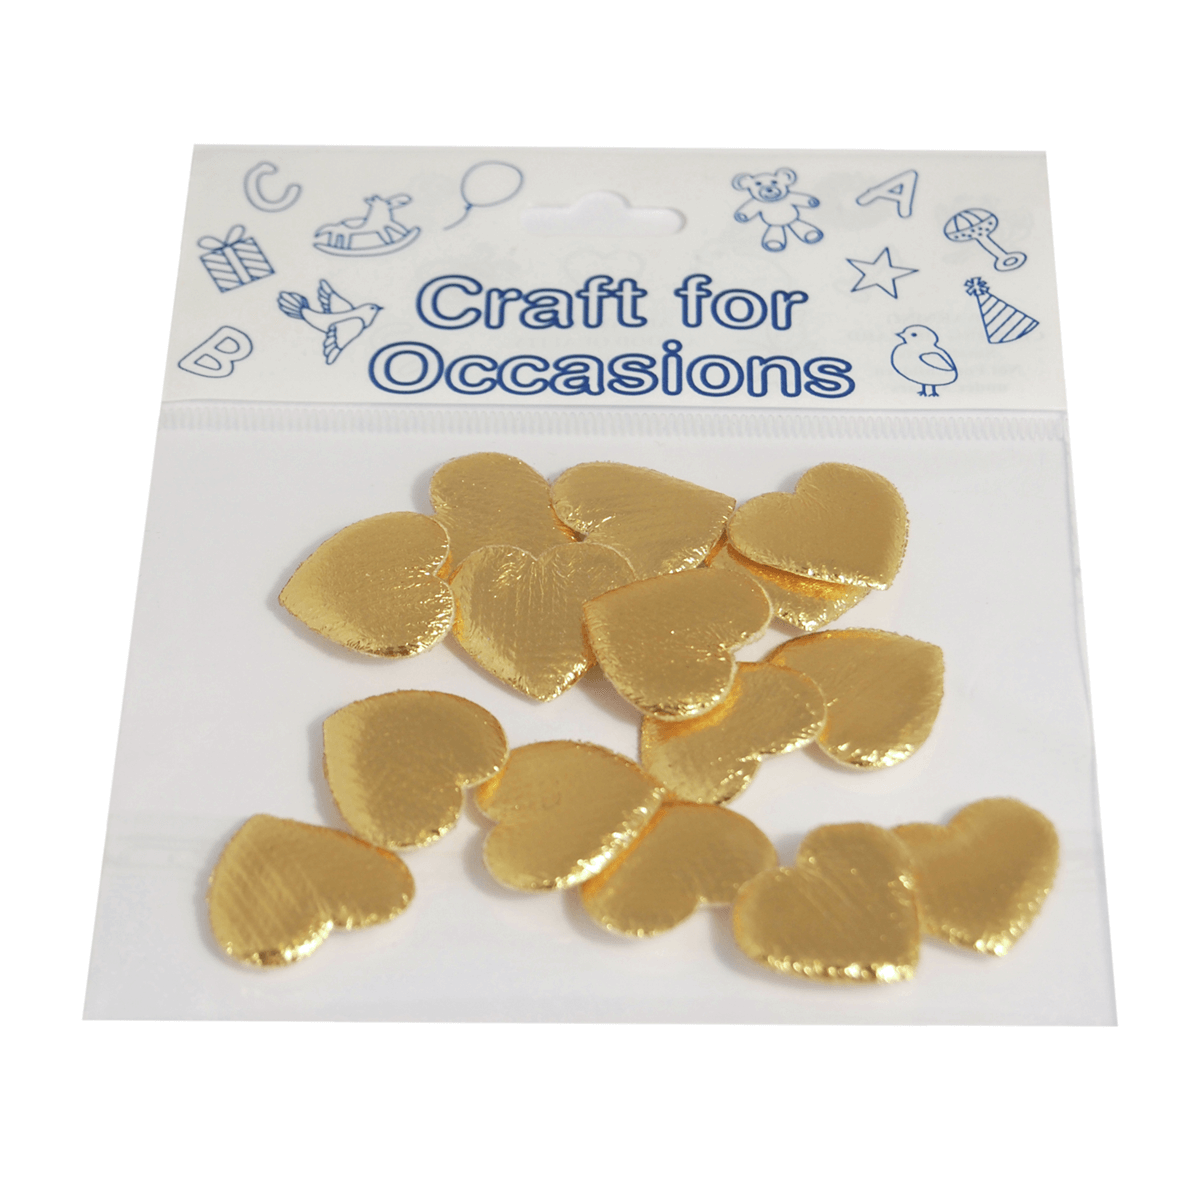 15 x Padded Hearts 2cm Metallic Gold Embellishment Craft Cardmaking